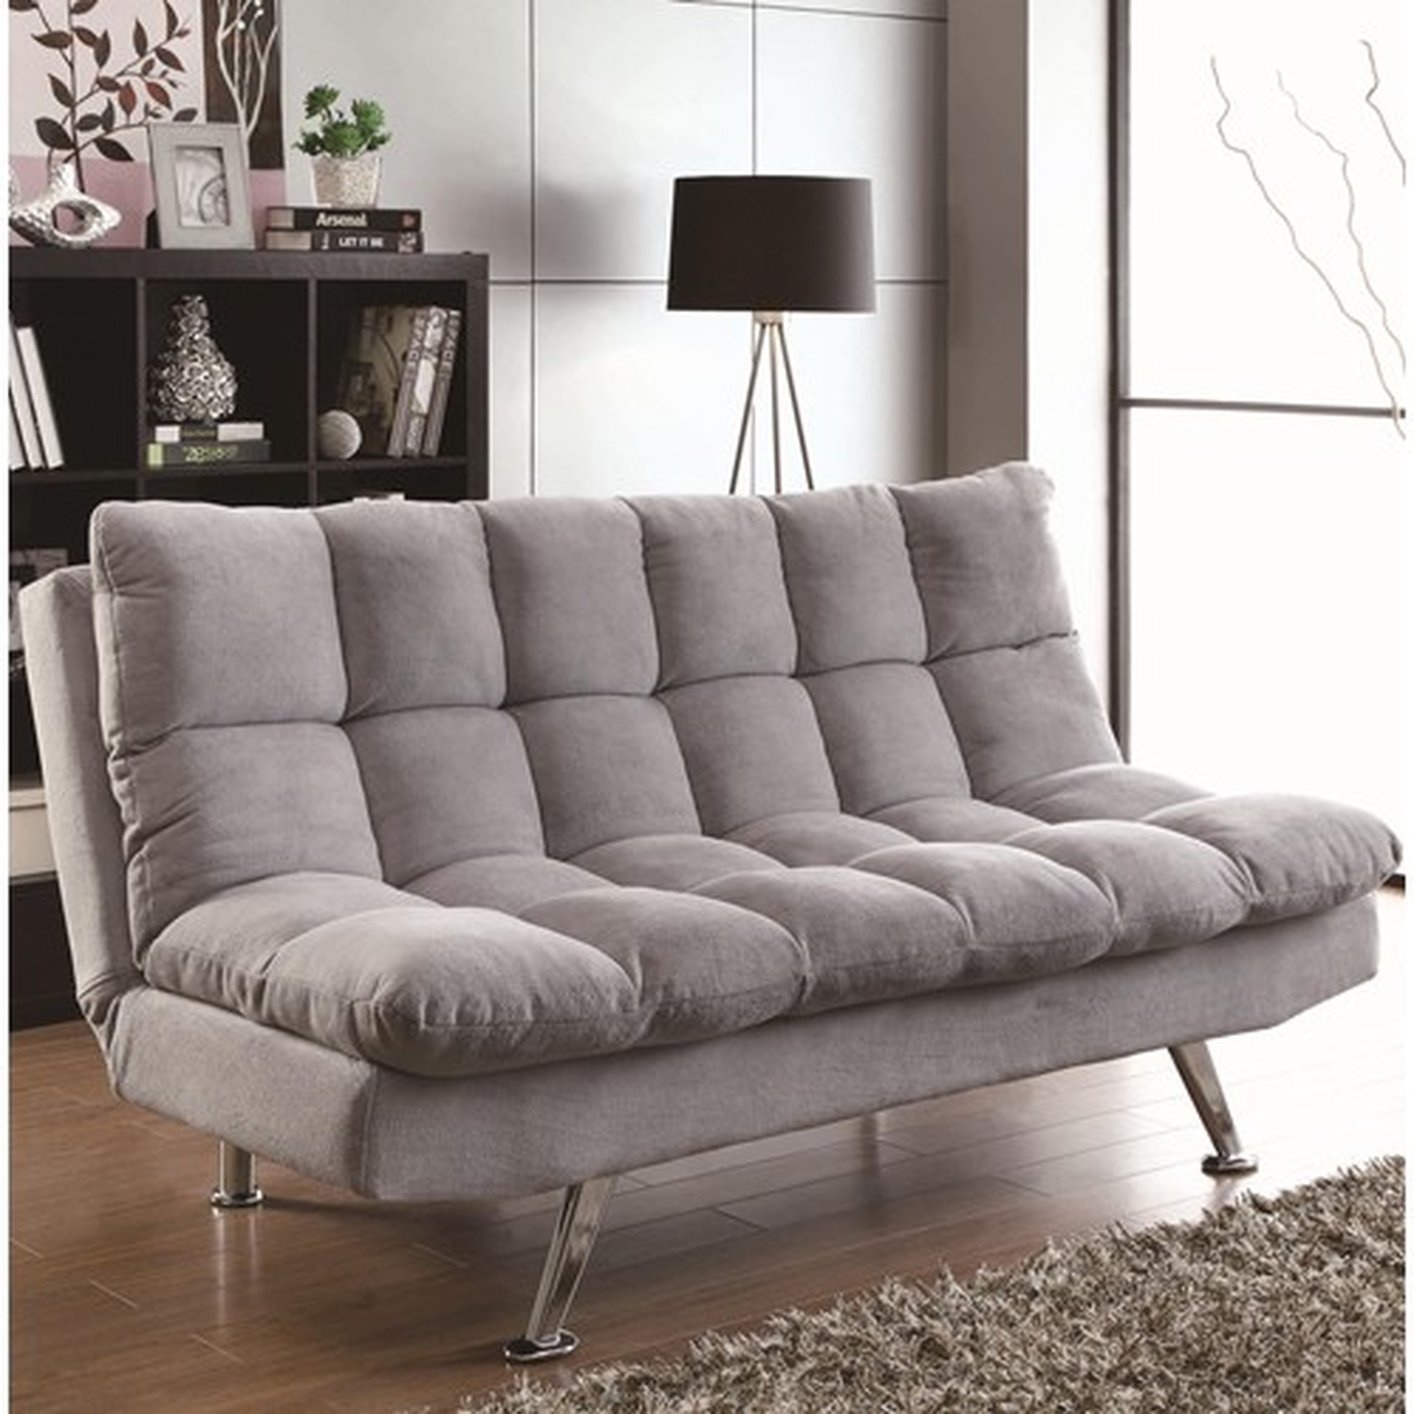 Coaster 500775 grey fabric sofa bed steal a sofa for Sofa bed outlet